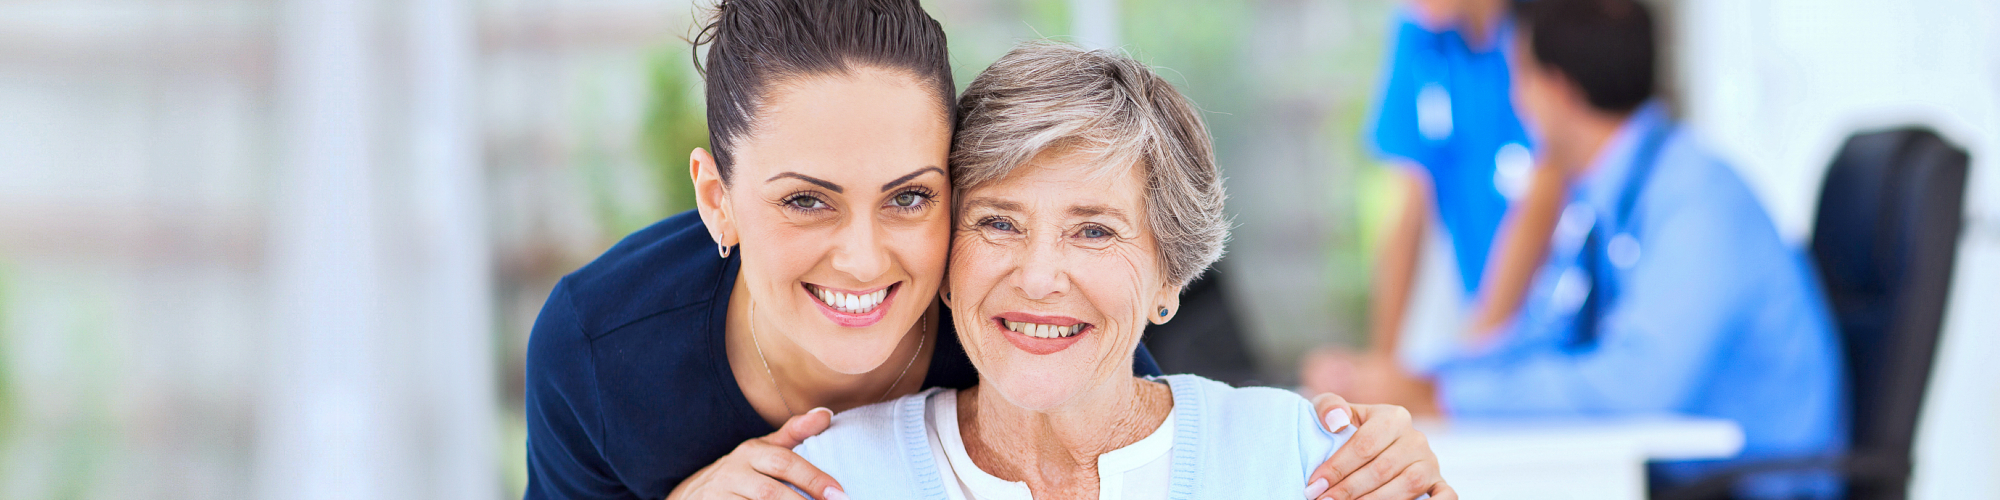 senior and woman smiling